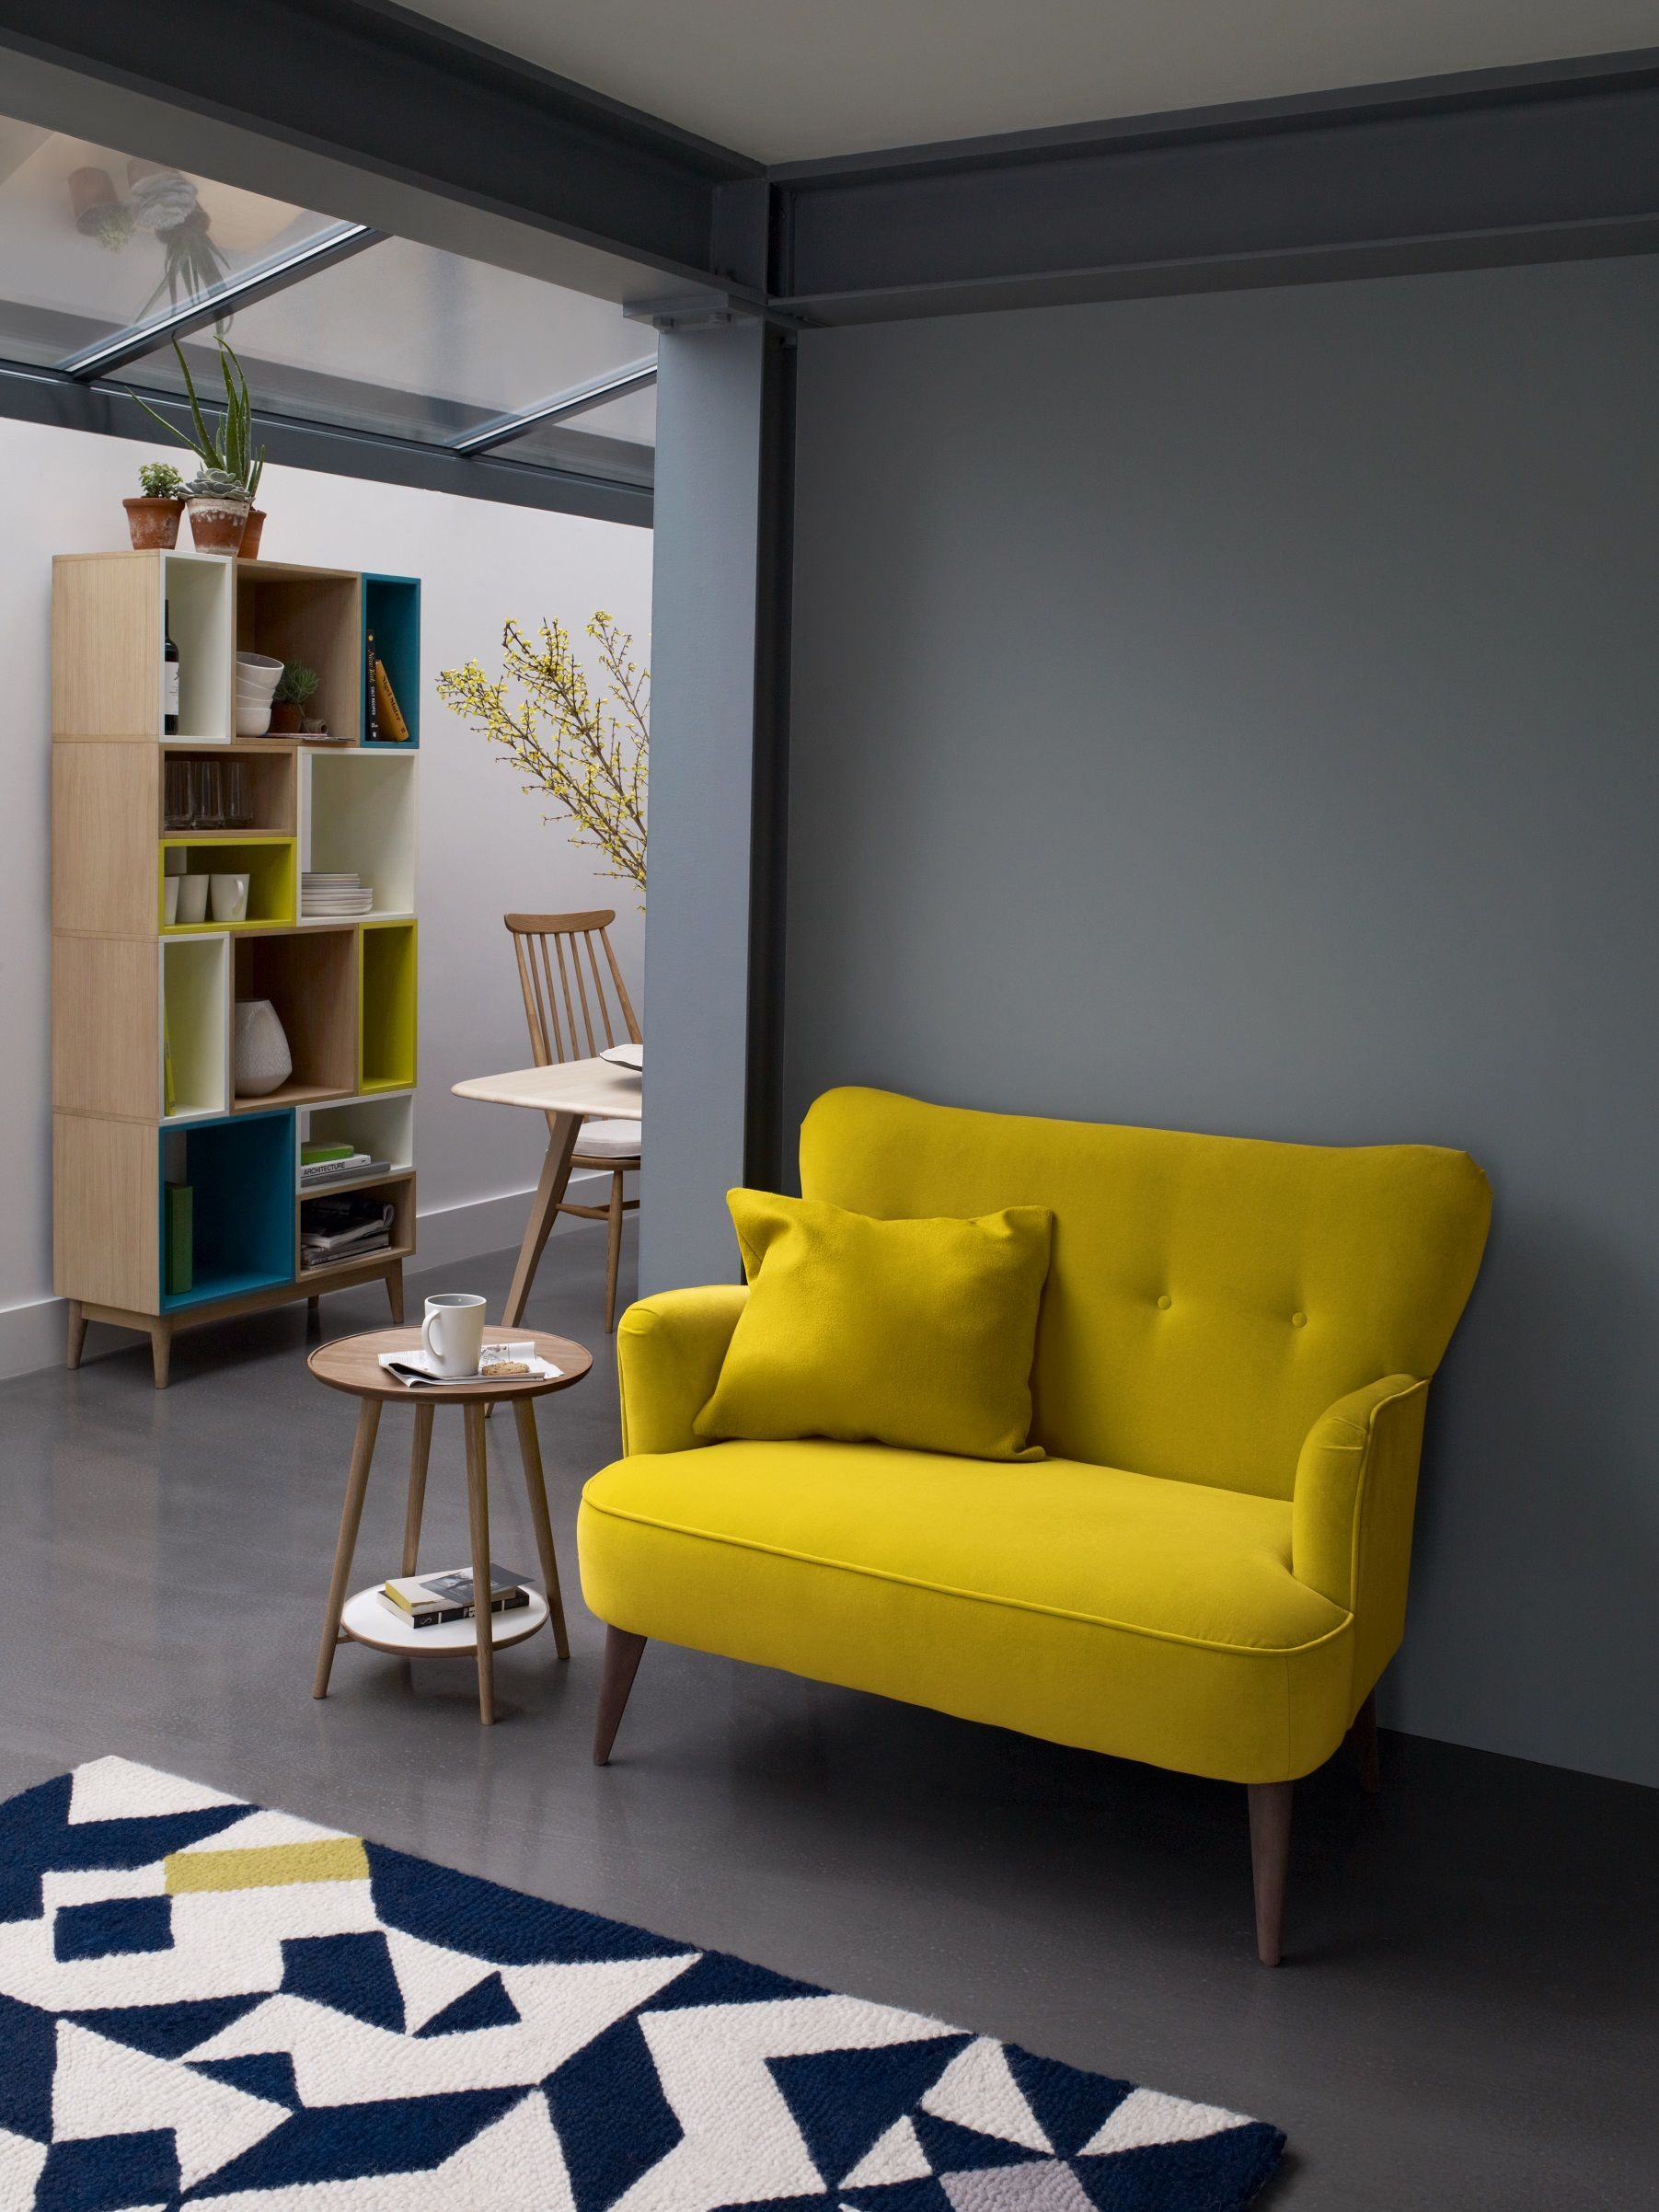 Yellow And Grey Chair Lawn Fabric Key Pieces That Can Transform Any Room A Statement Decor